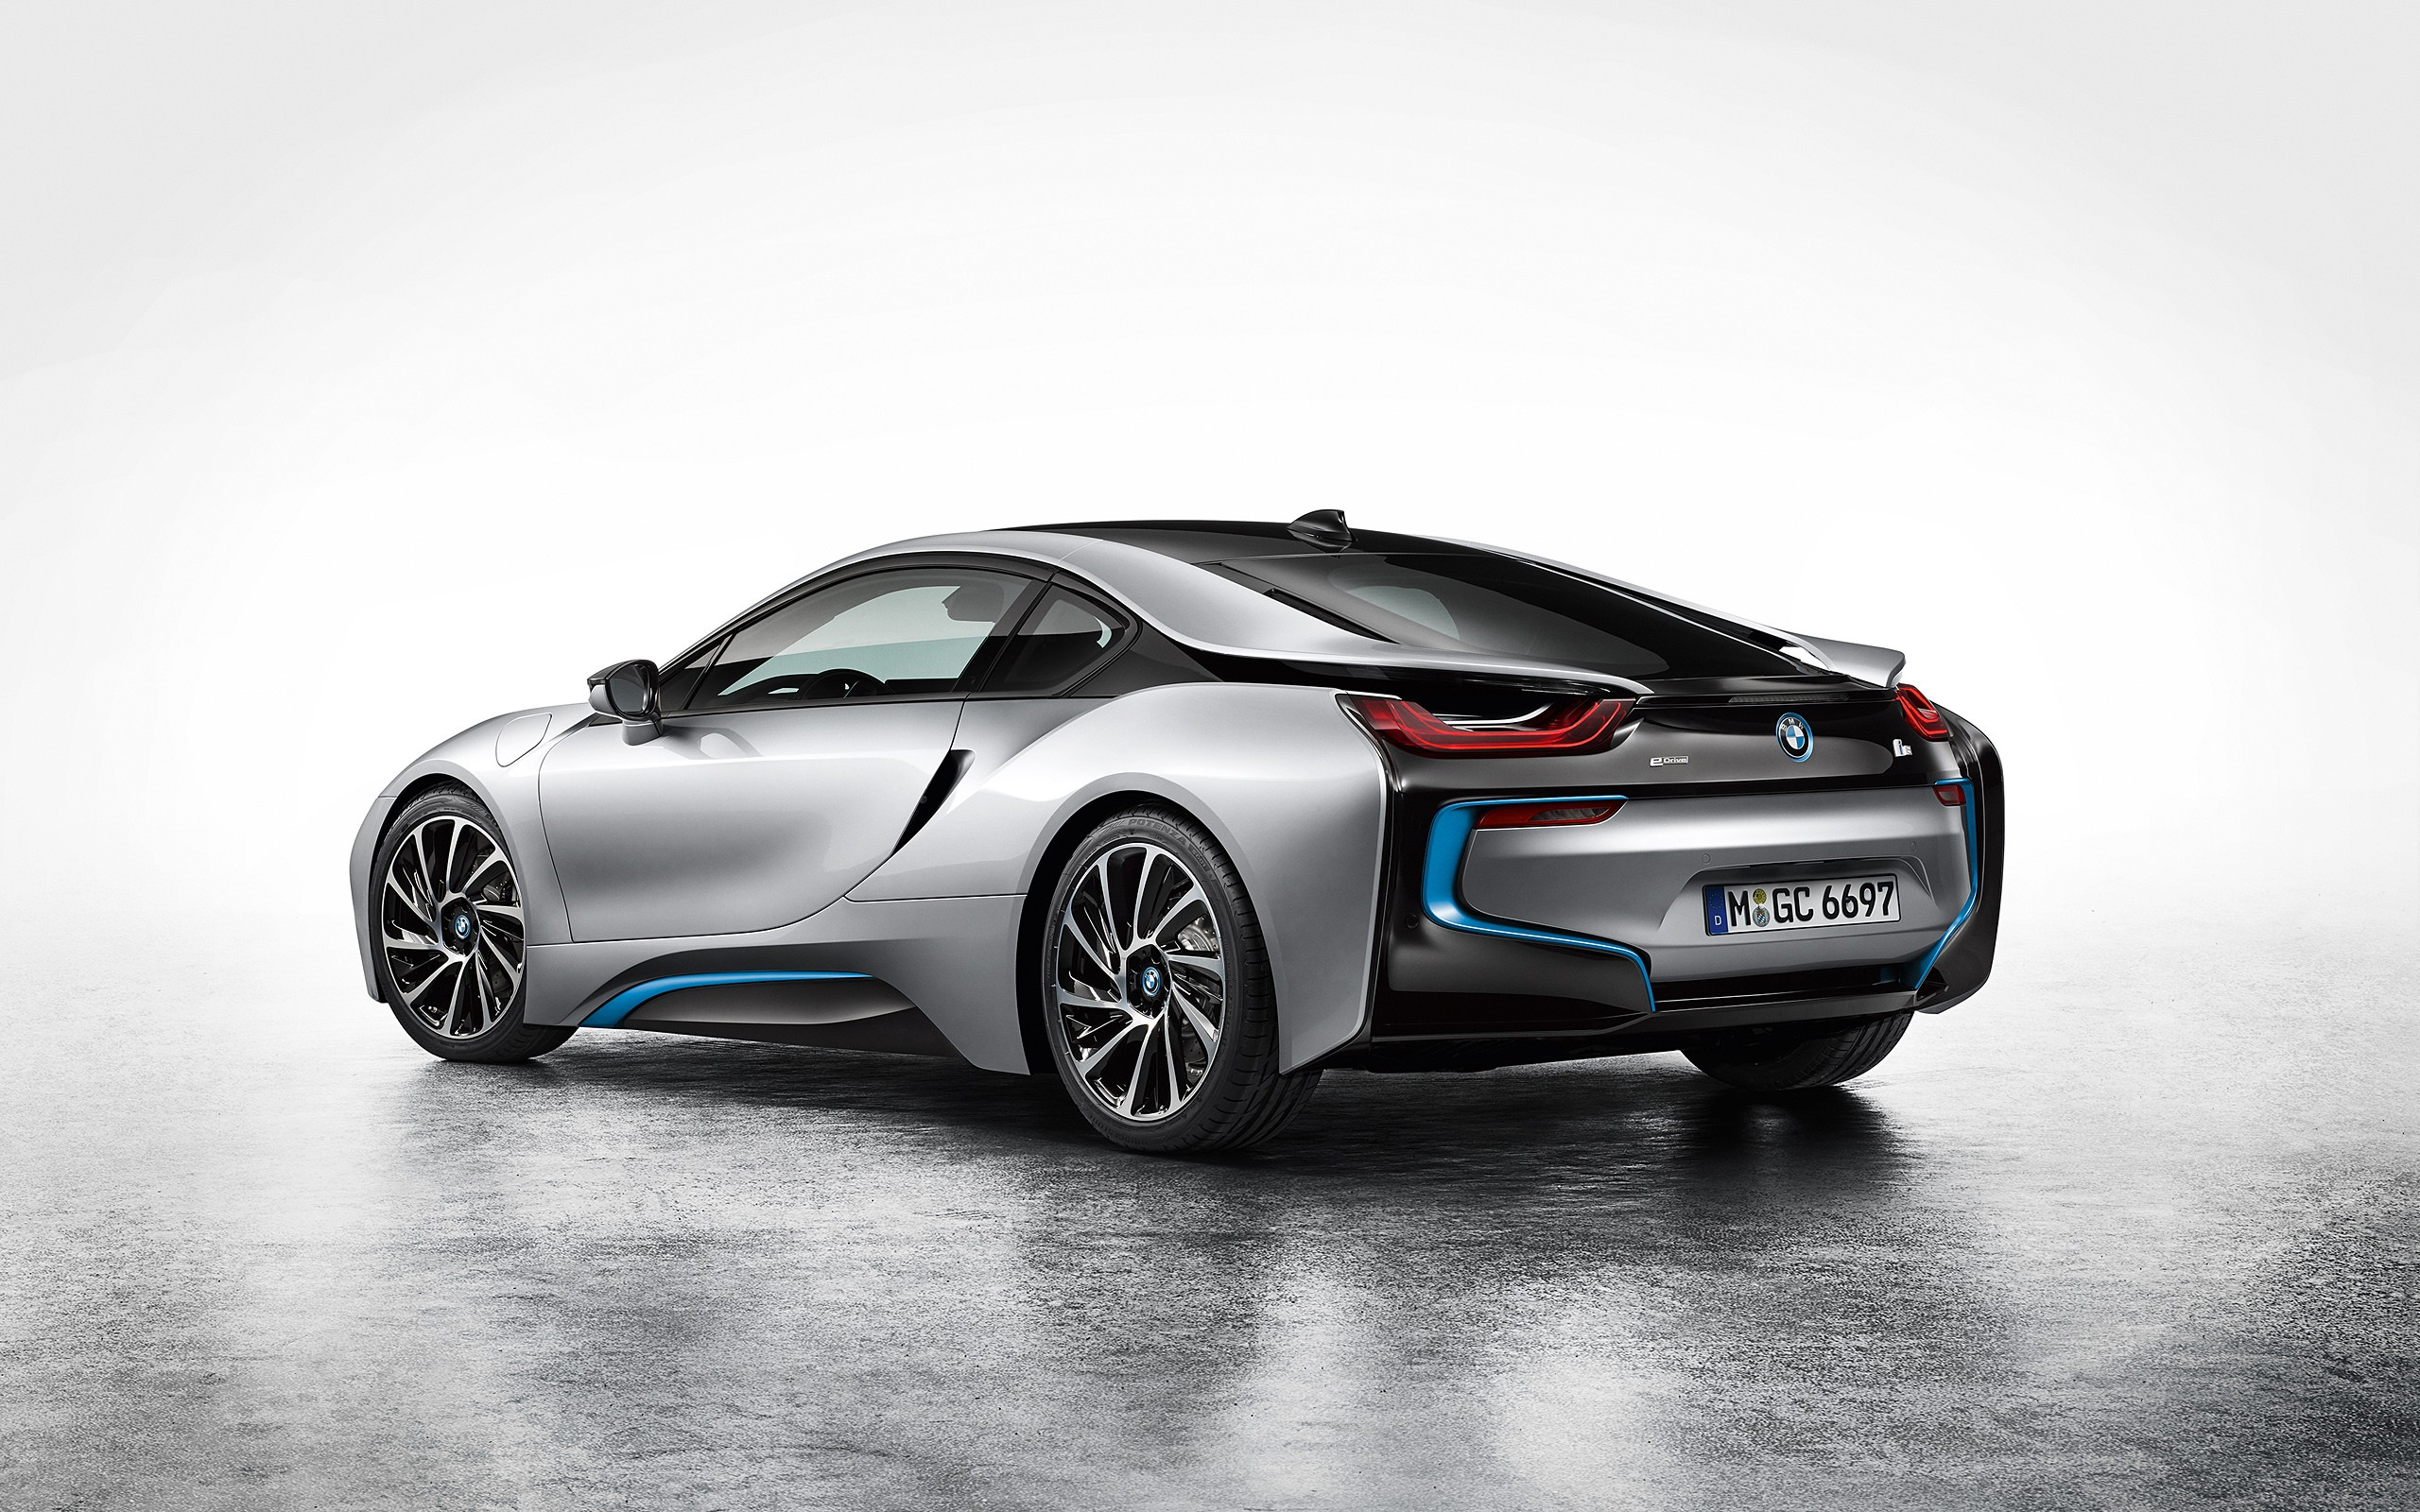 General 2560x1600 car silver cars vehicle simple background BMW BMW i8